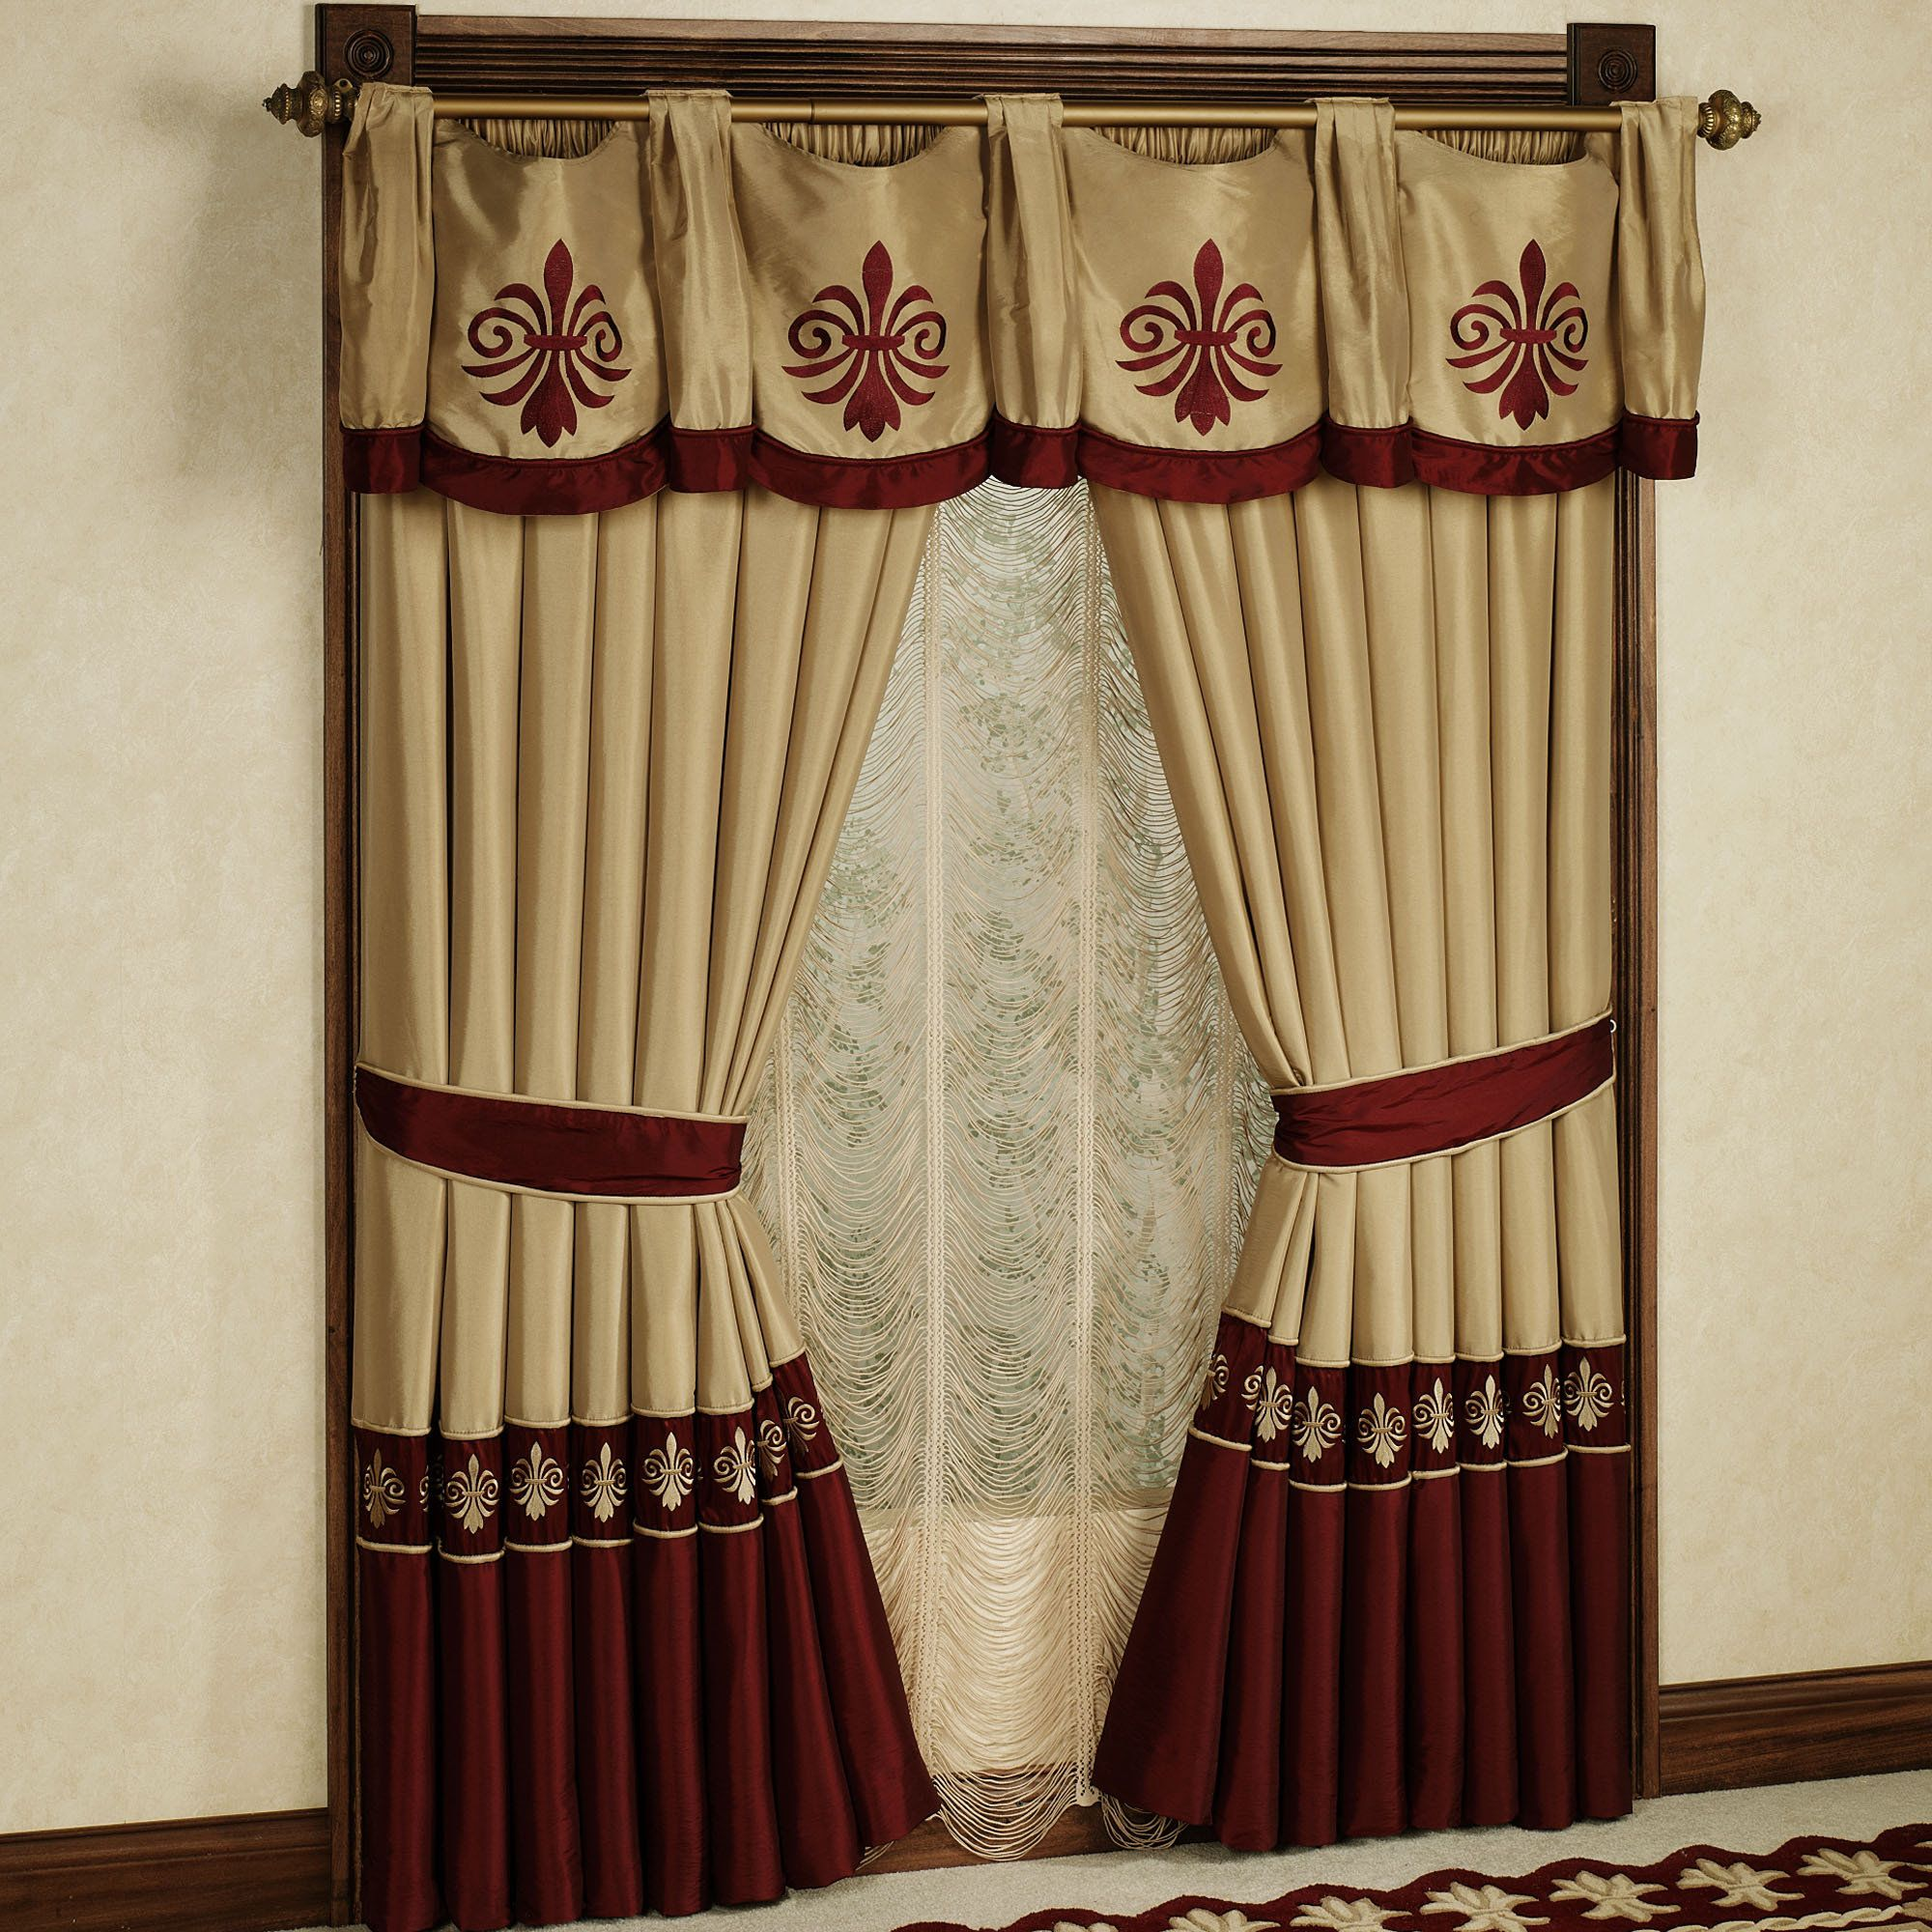 saving panels valance romantic valances zoom buy burgundy two curtains loading printed floral p energy